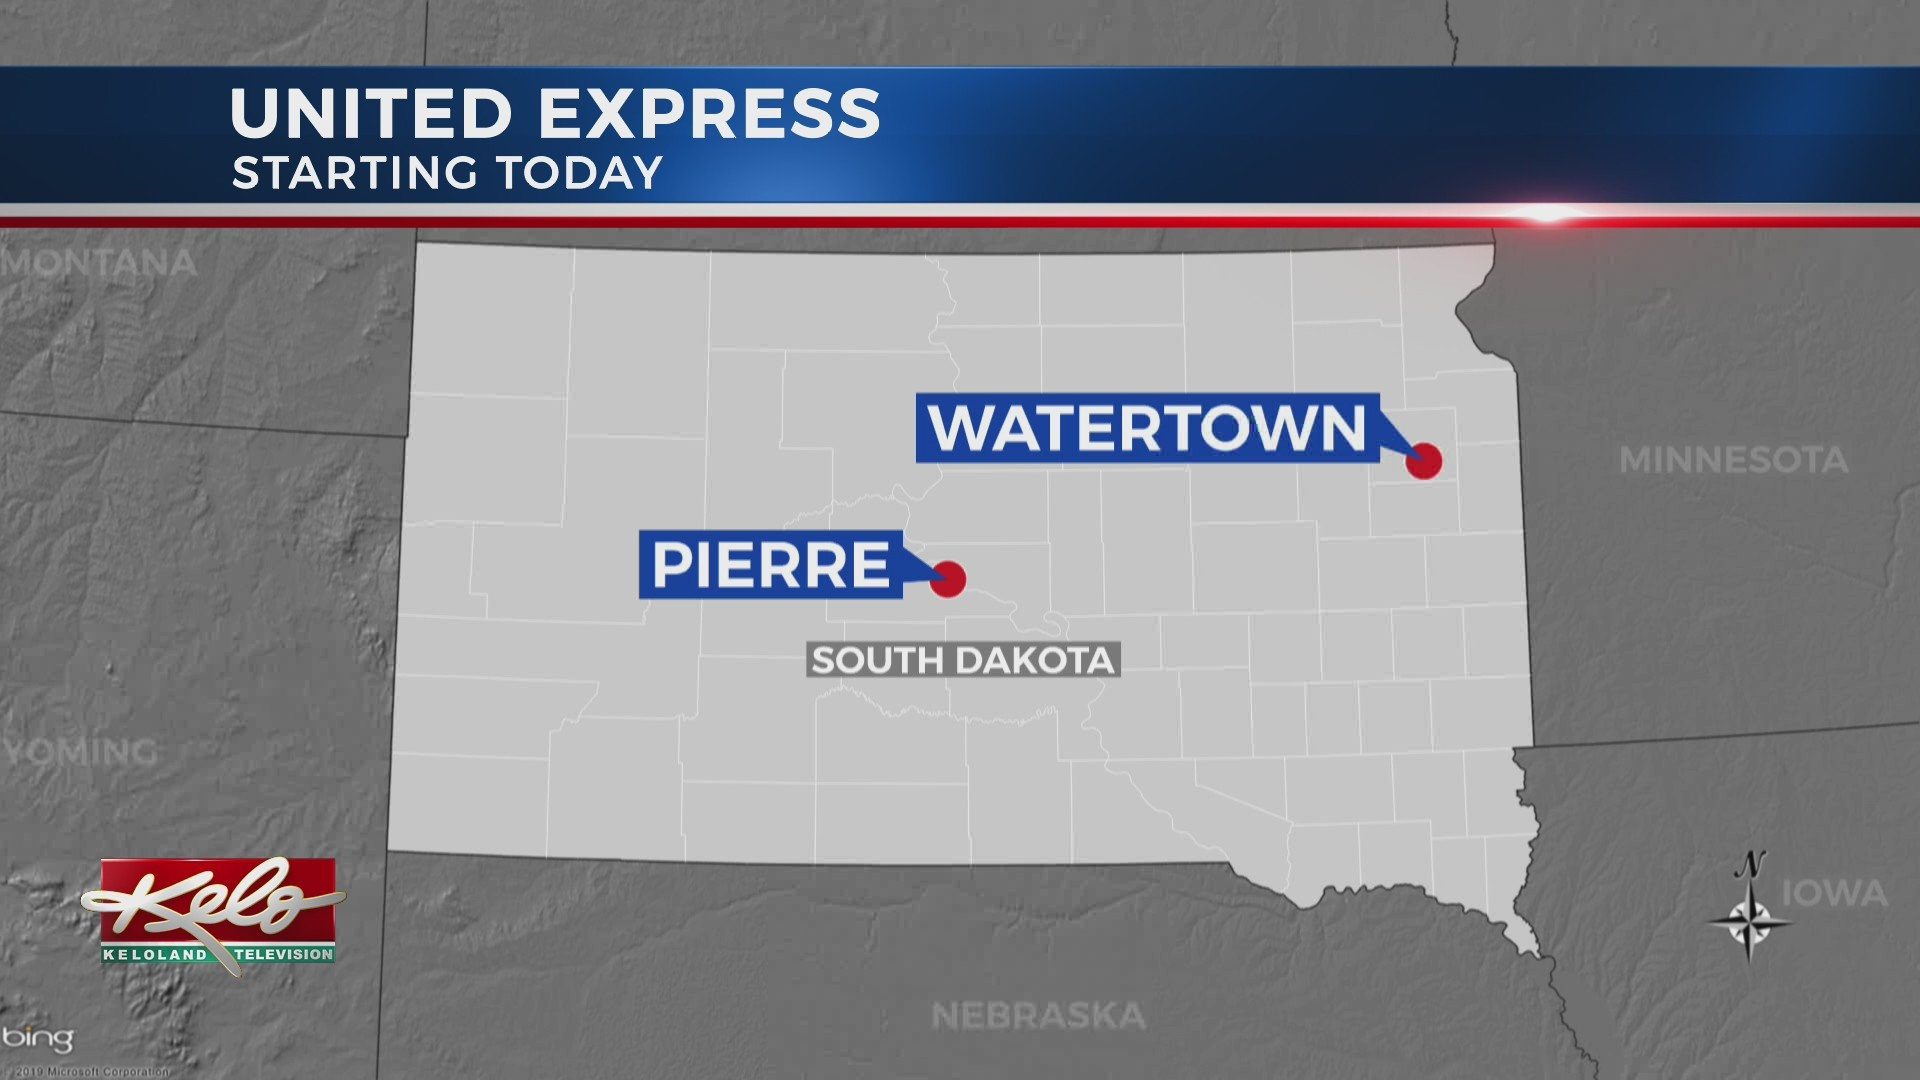 Commercial Air Service Returns To Pierre, Watertown